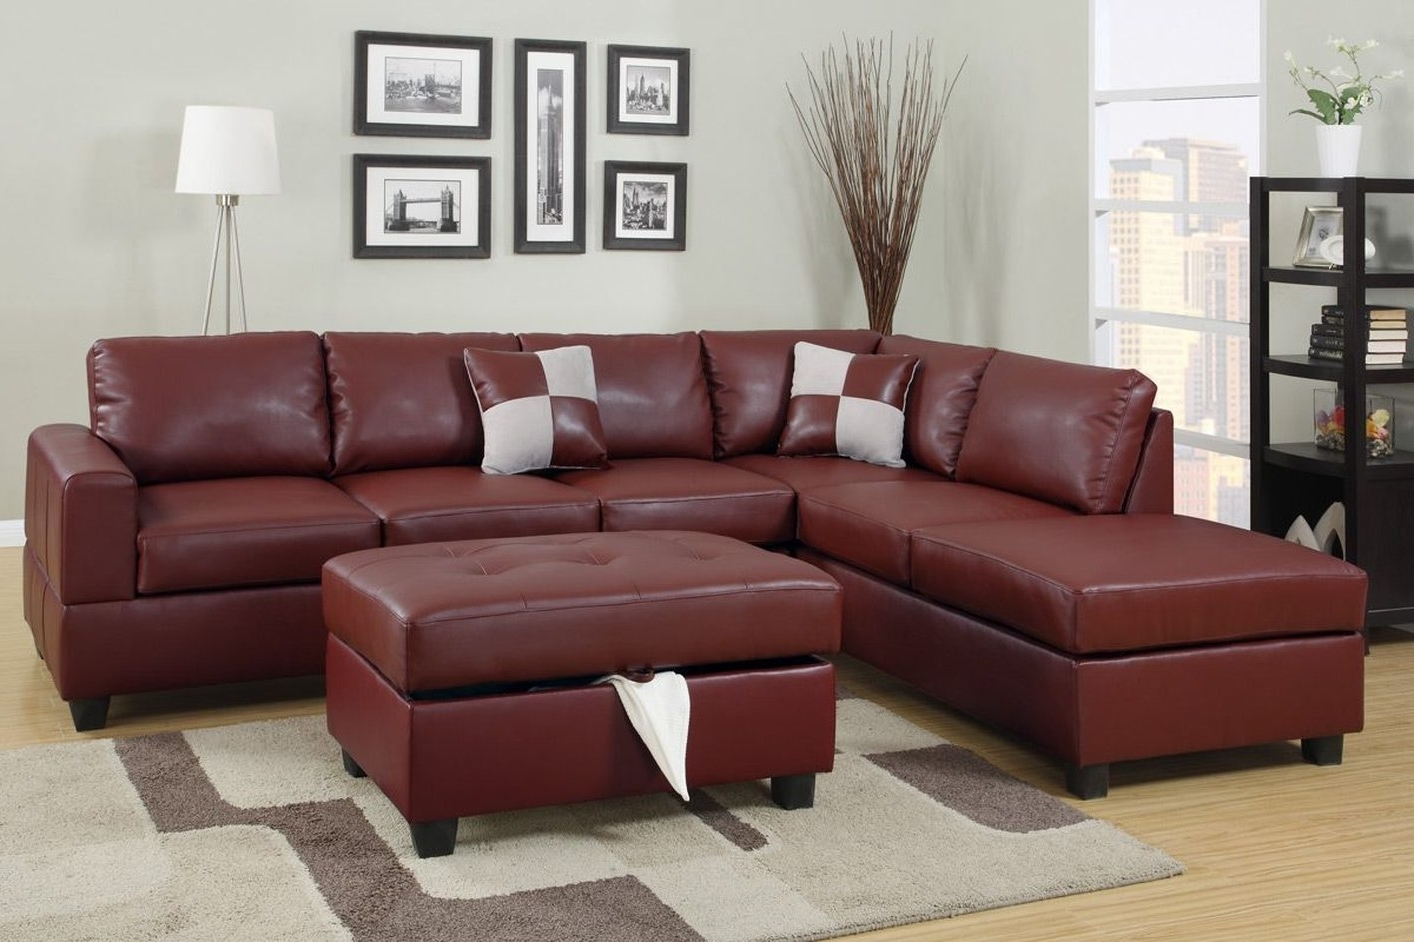 April Red Leather Sectional Sofa And Ottoman – Steal A Sofa With Well Known Red Leather Sectional Couches (View 7 of 20)